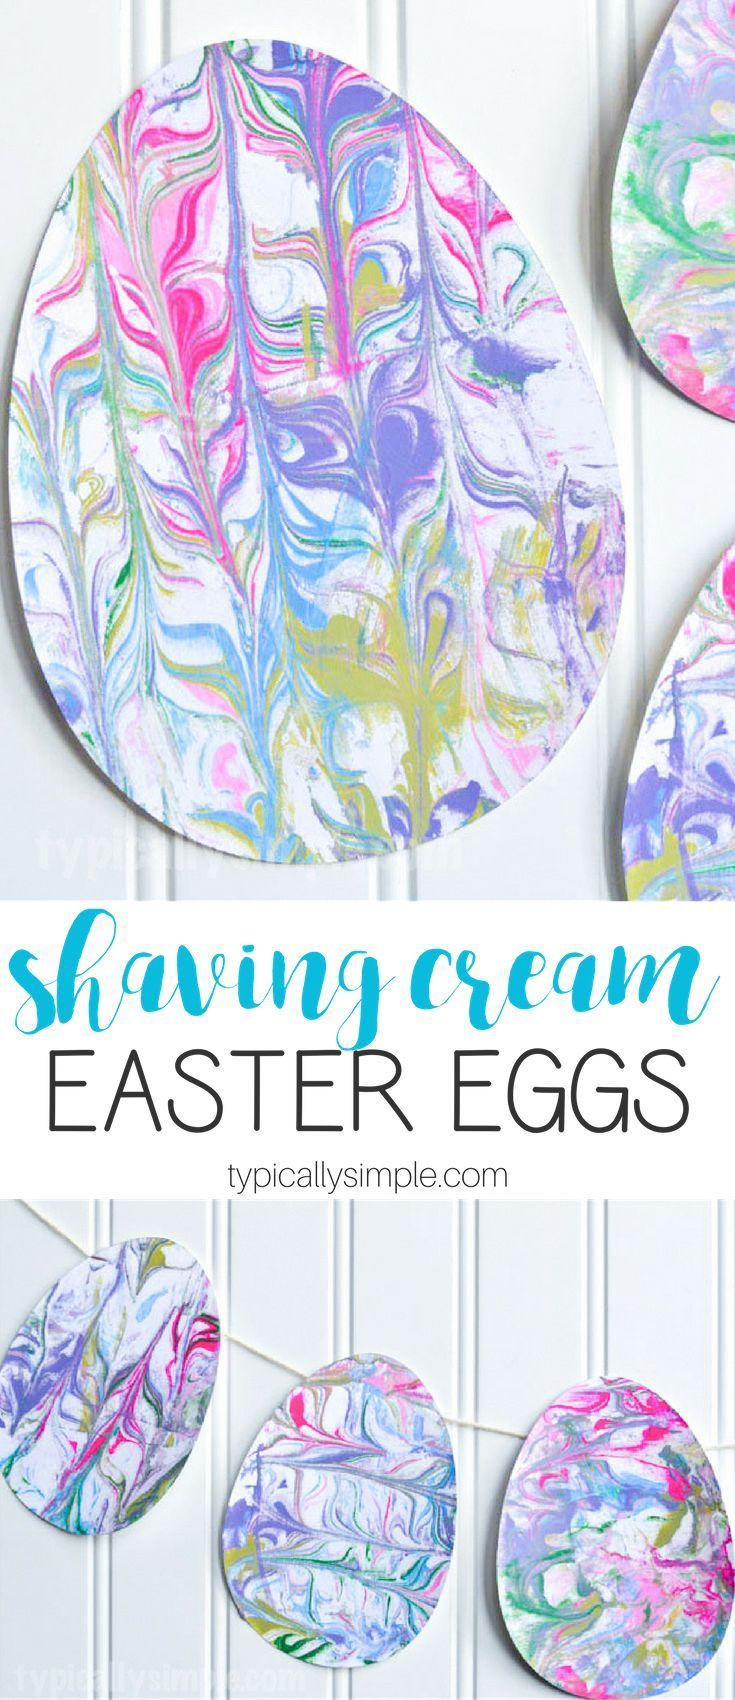 A fun Easter Egg craft using marbled paper made with shaving cream! The kids will have so much fun getting a little messy and creating some Easter decorations!